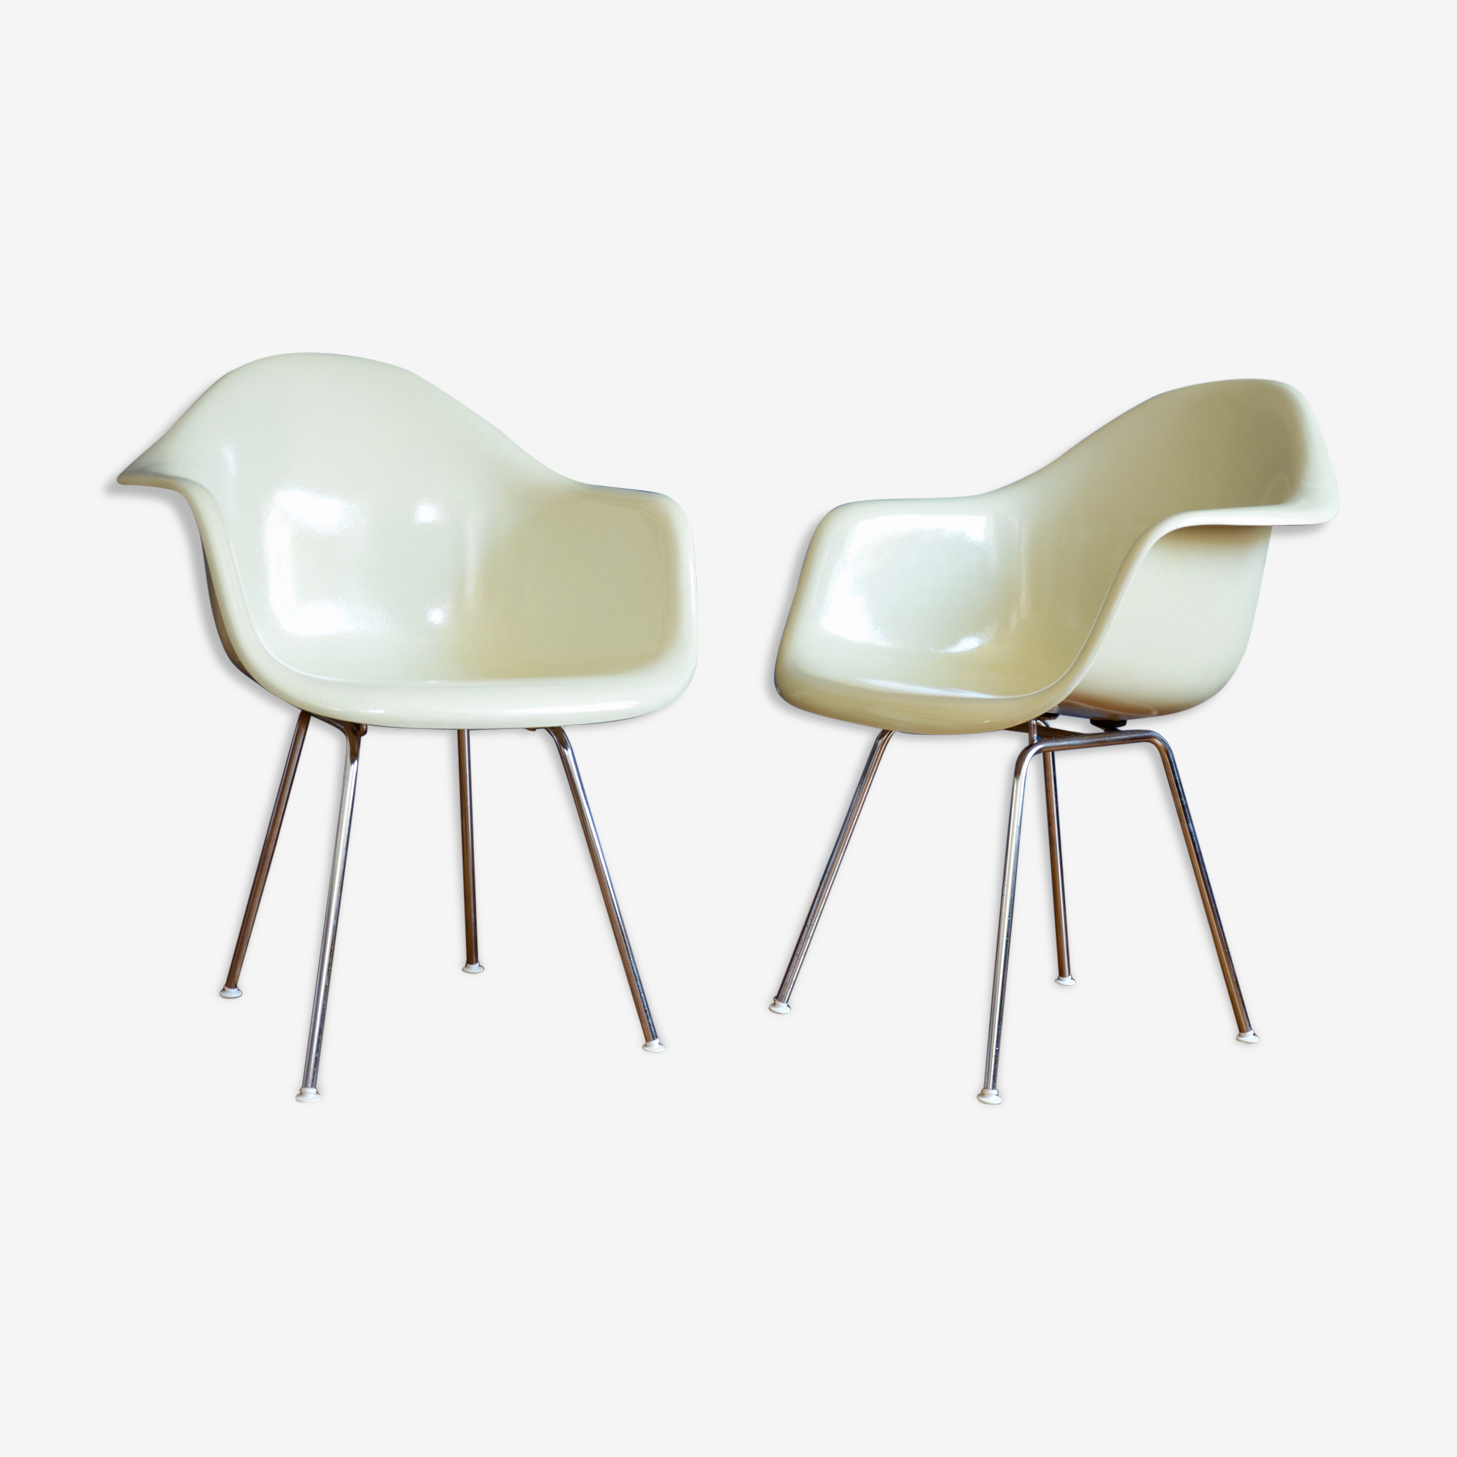 Pair of DAX armchairs by Charles and Ray Eames for Herman Miller